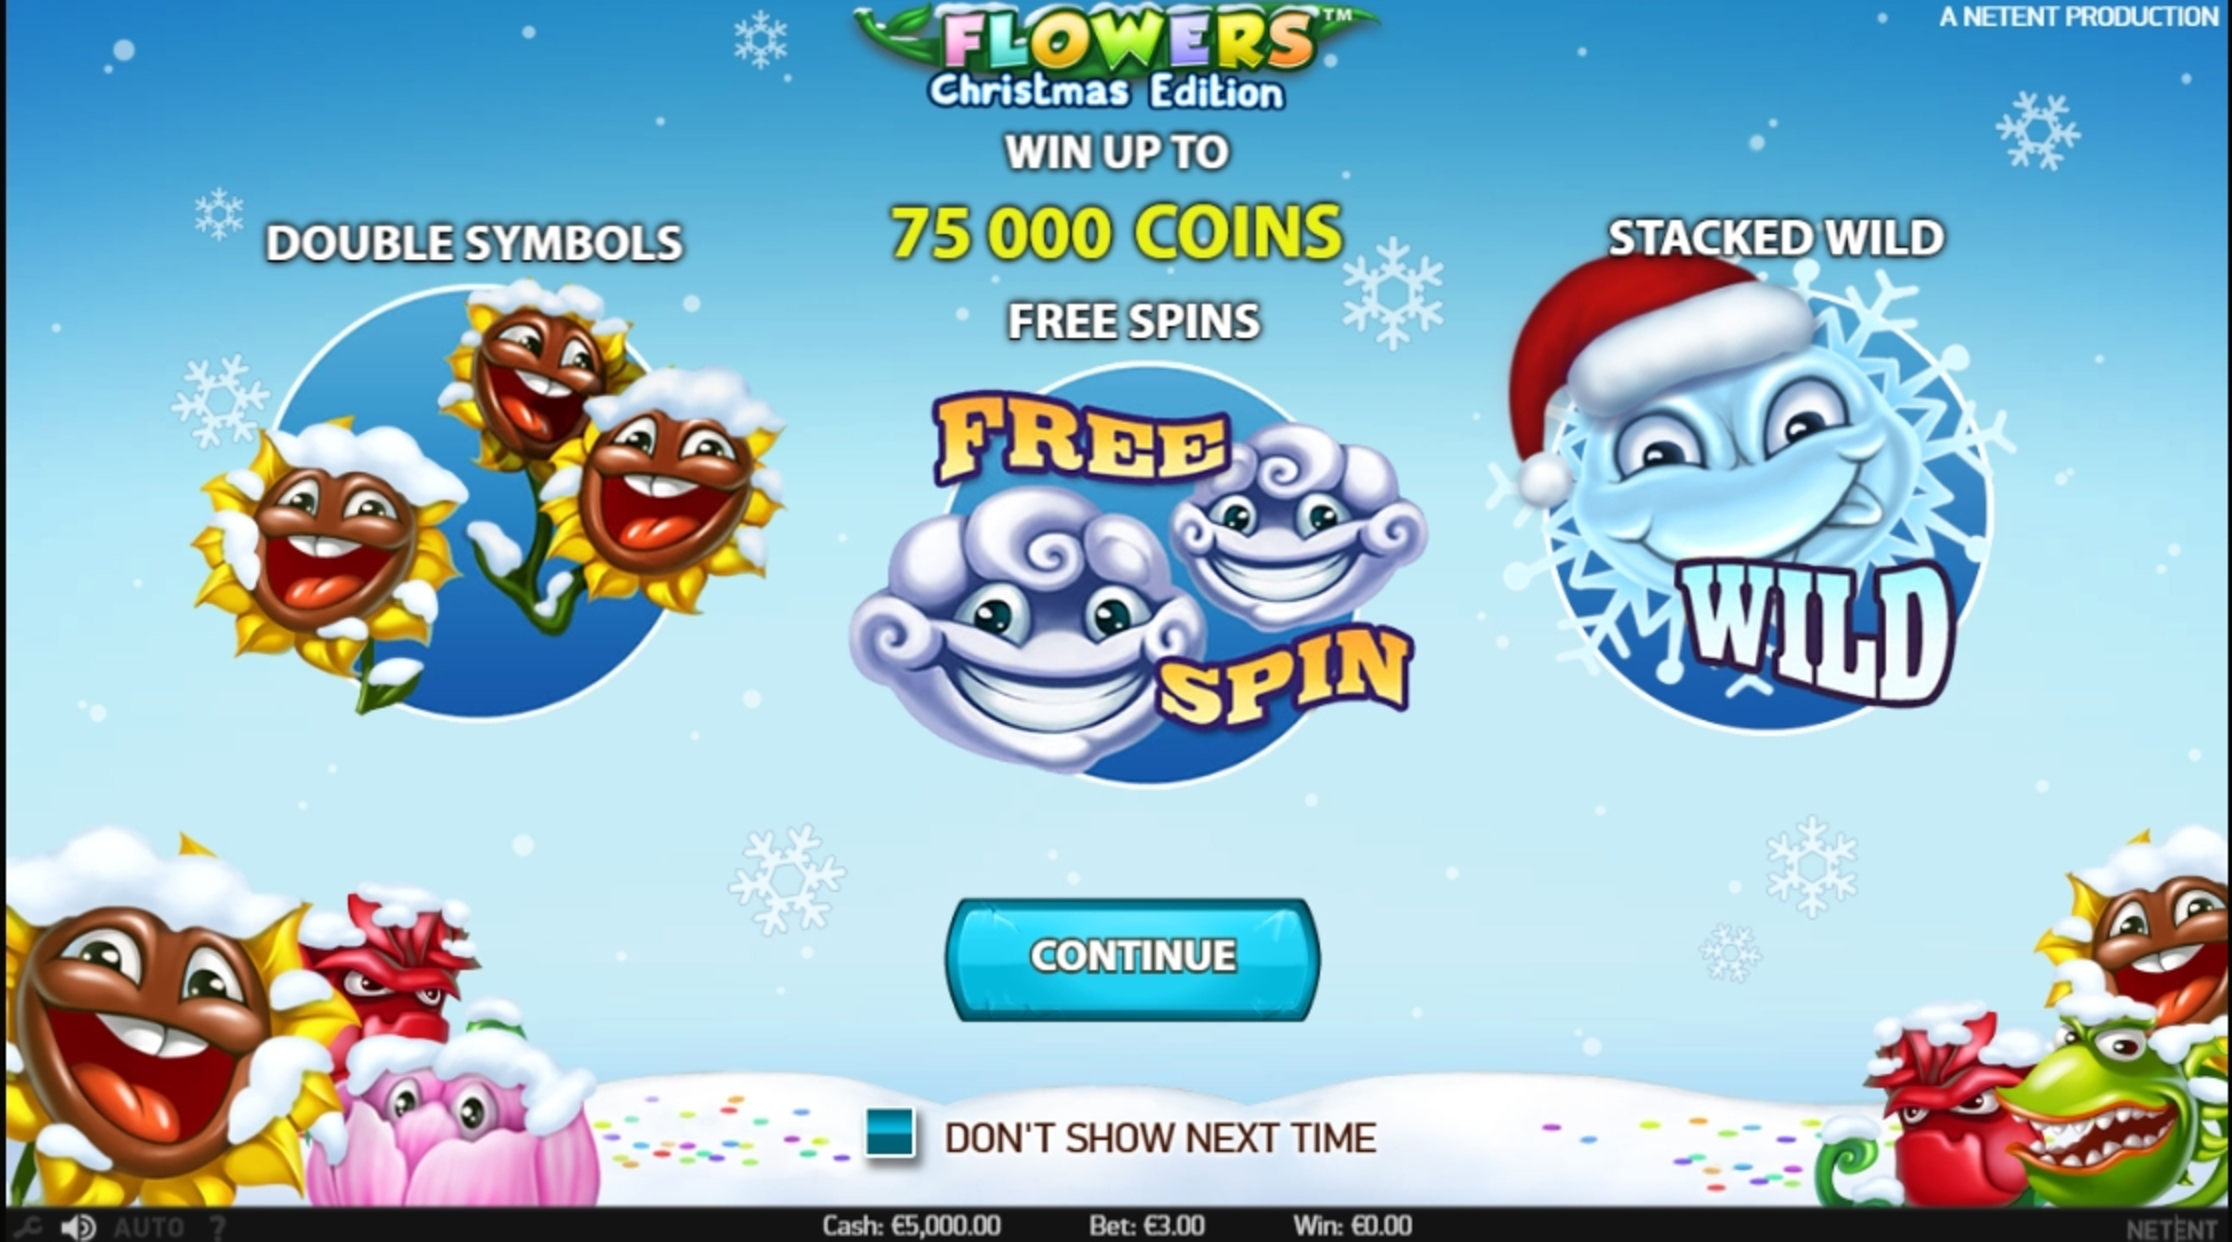 Play Flowers Christmas Edition Free Casino Slot Game by NetEnt